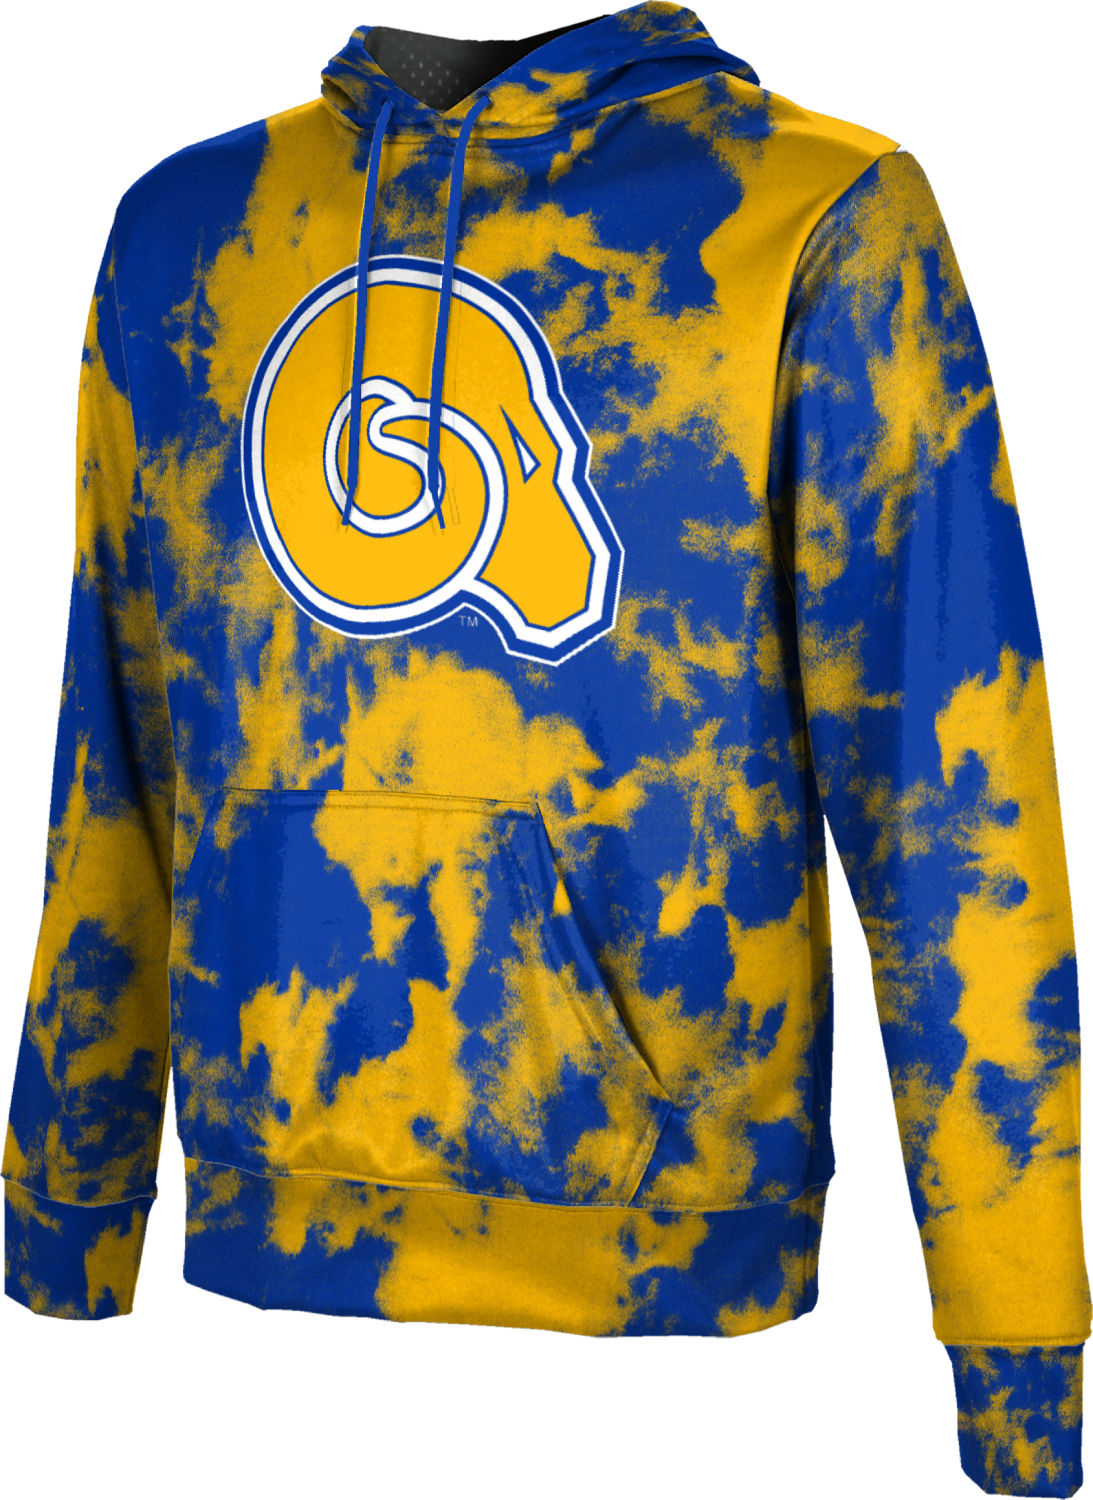 ProSphere Albany State University Boys Hoodie Sweatshirt Digital